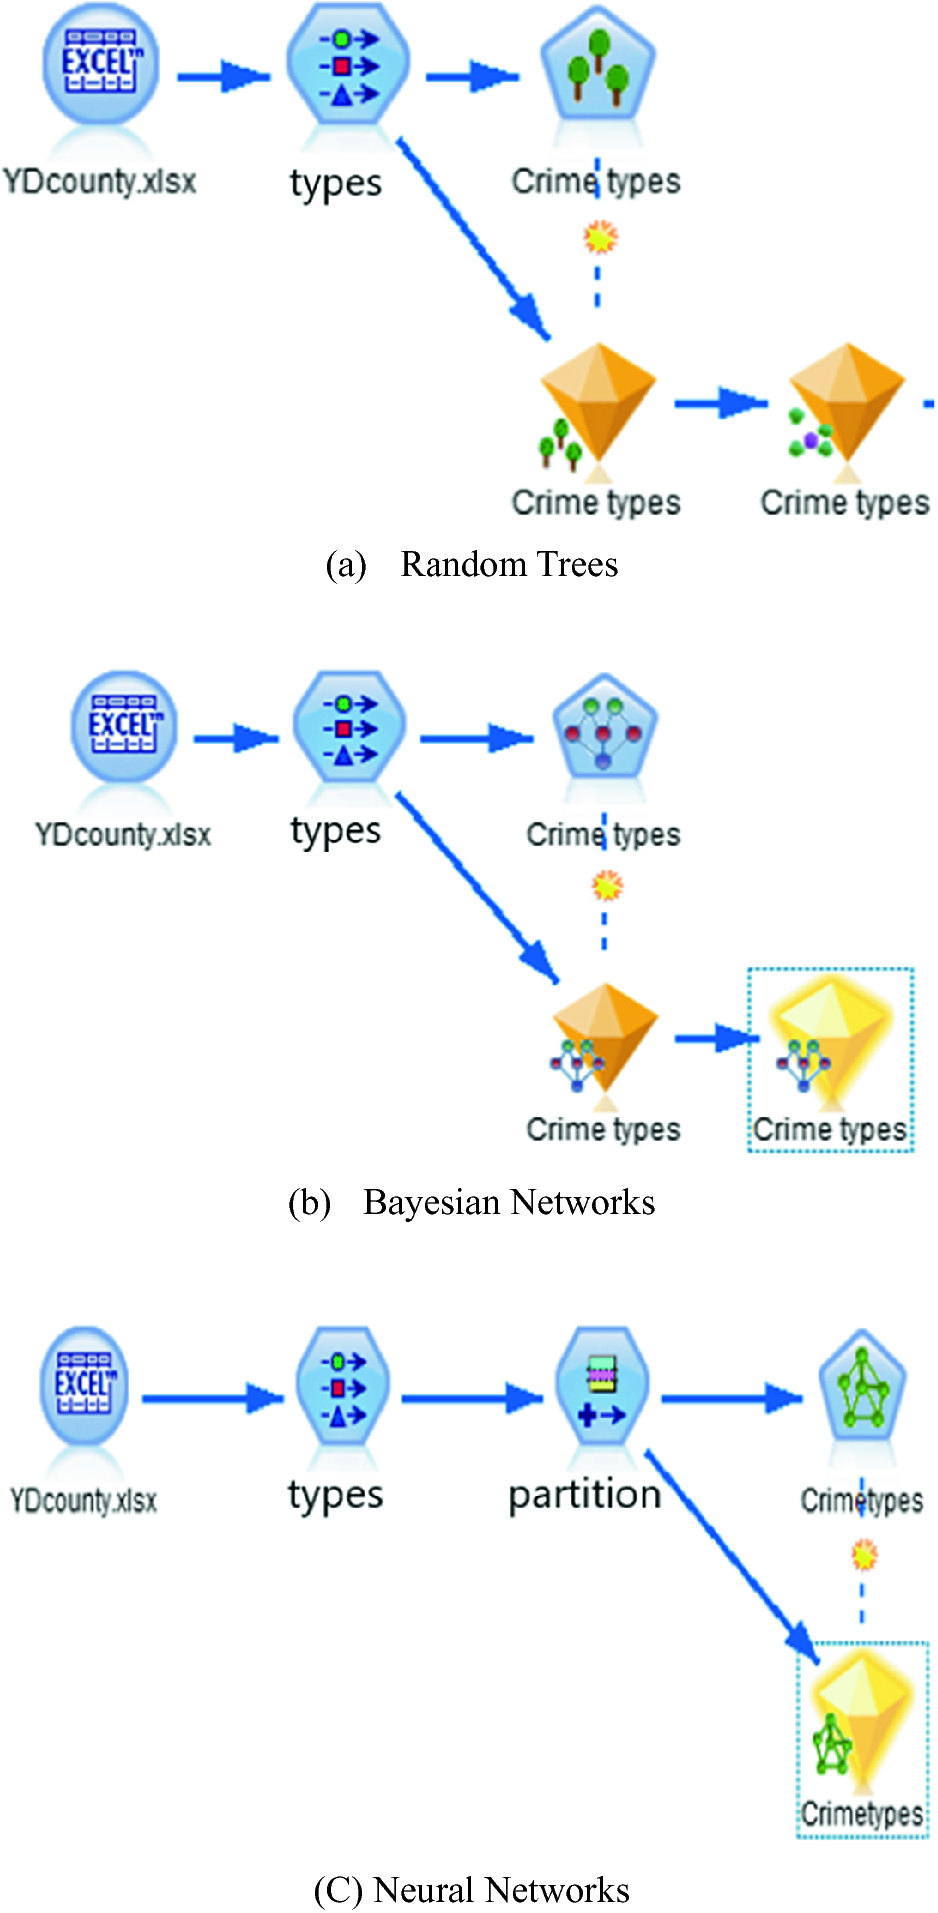 Crime Prediction Using Data Mining and Machine Learning